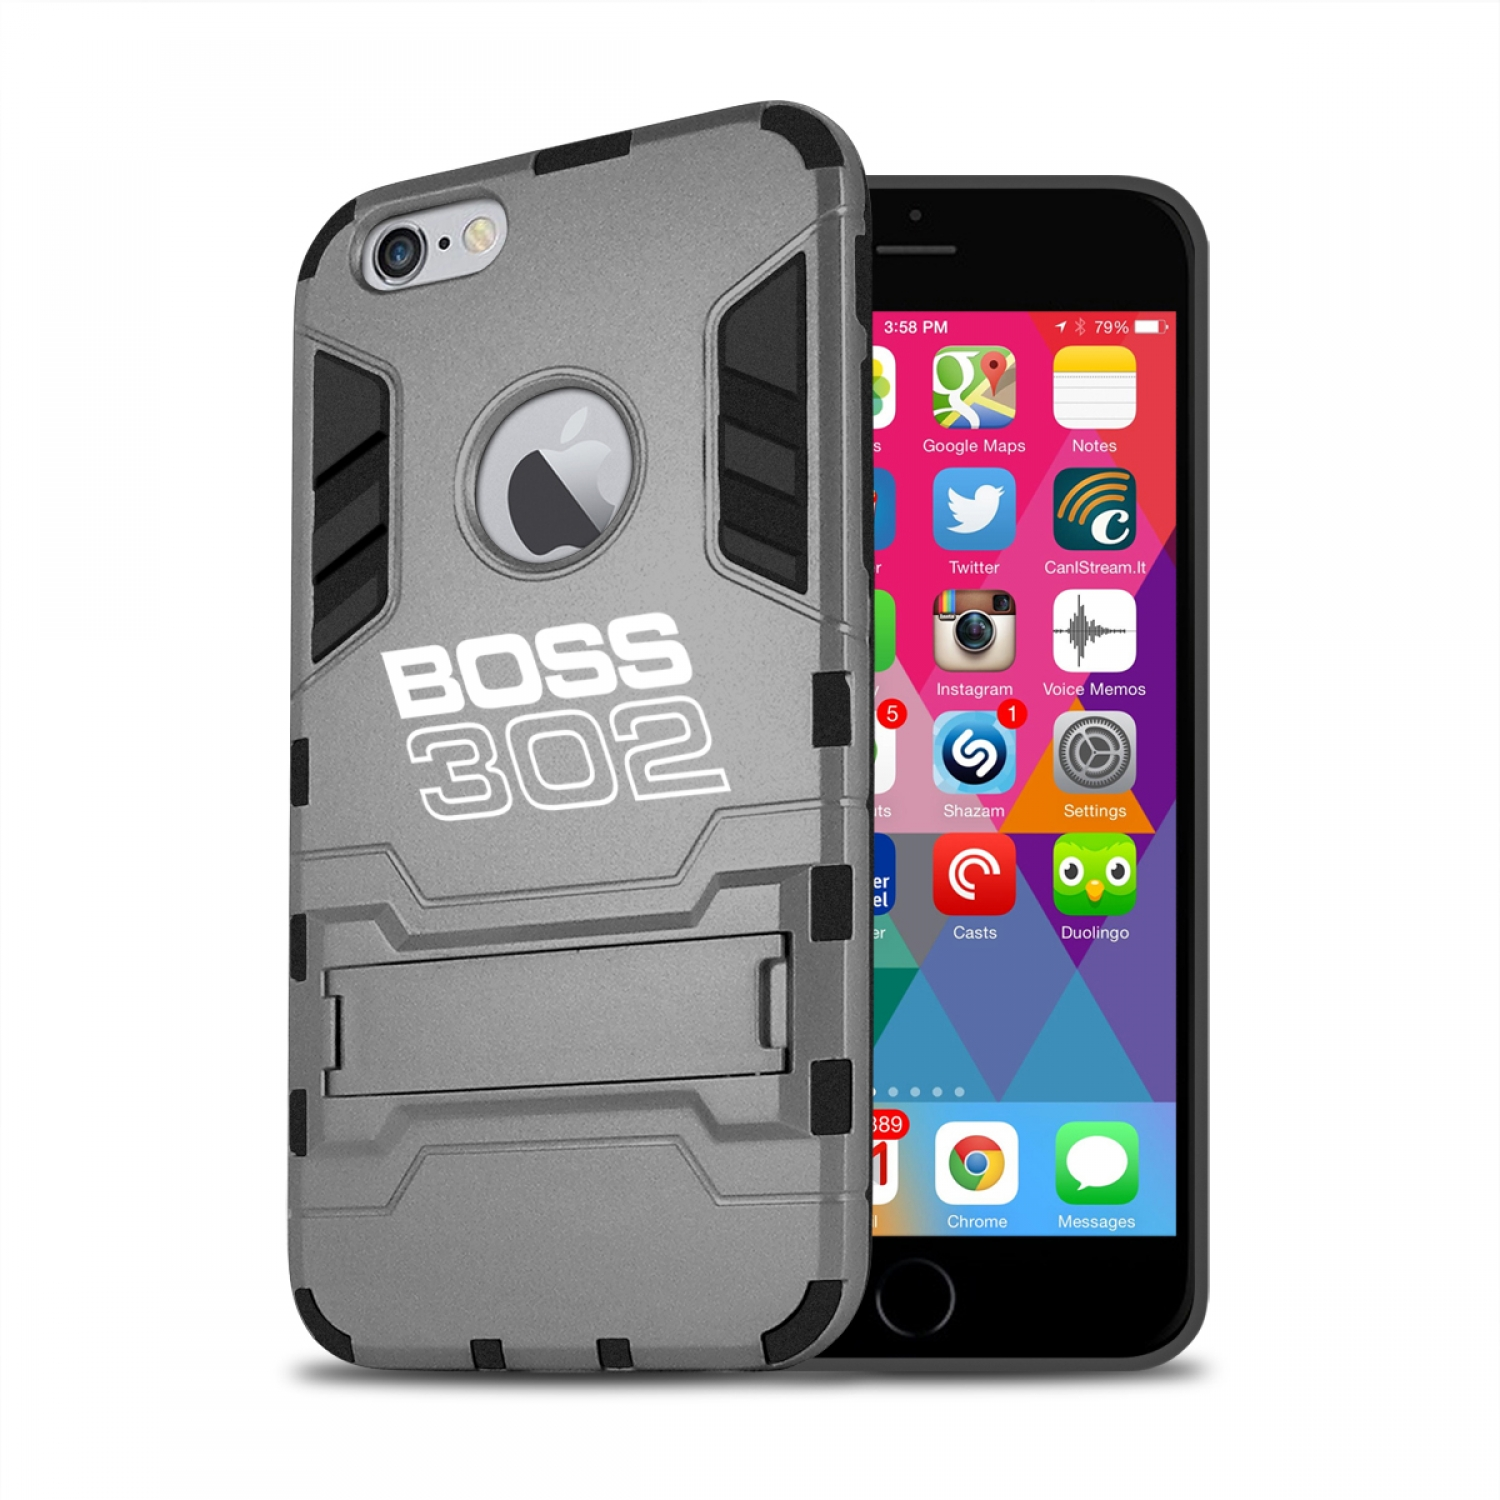 Ford Mustang Boss 302 iPhone 6 6s Shockproof TPU ABS Hybrid Dark Gray Phone Case